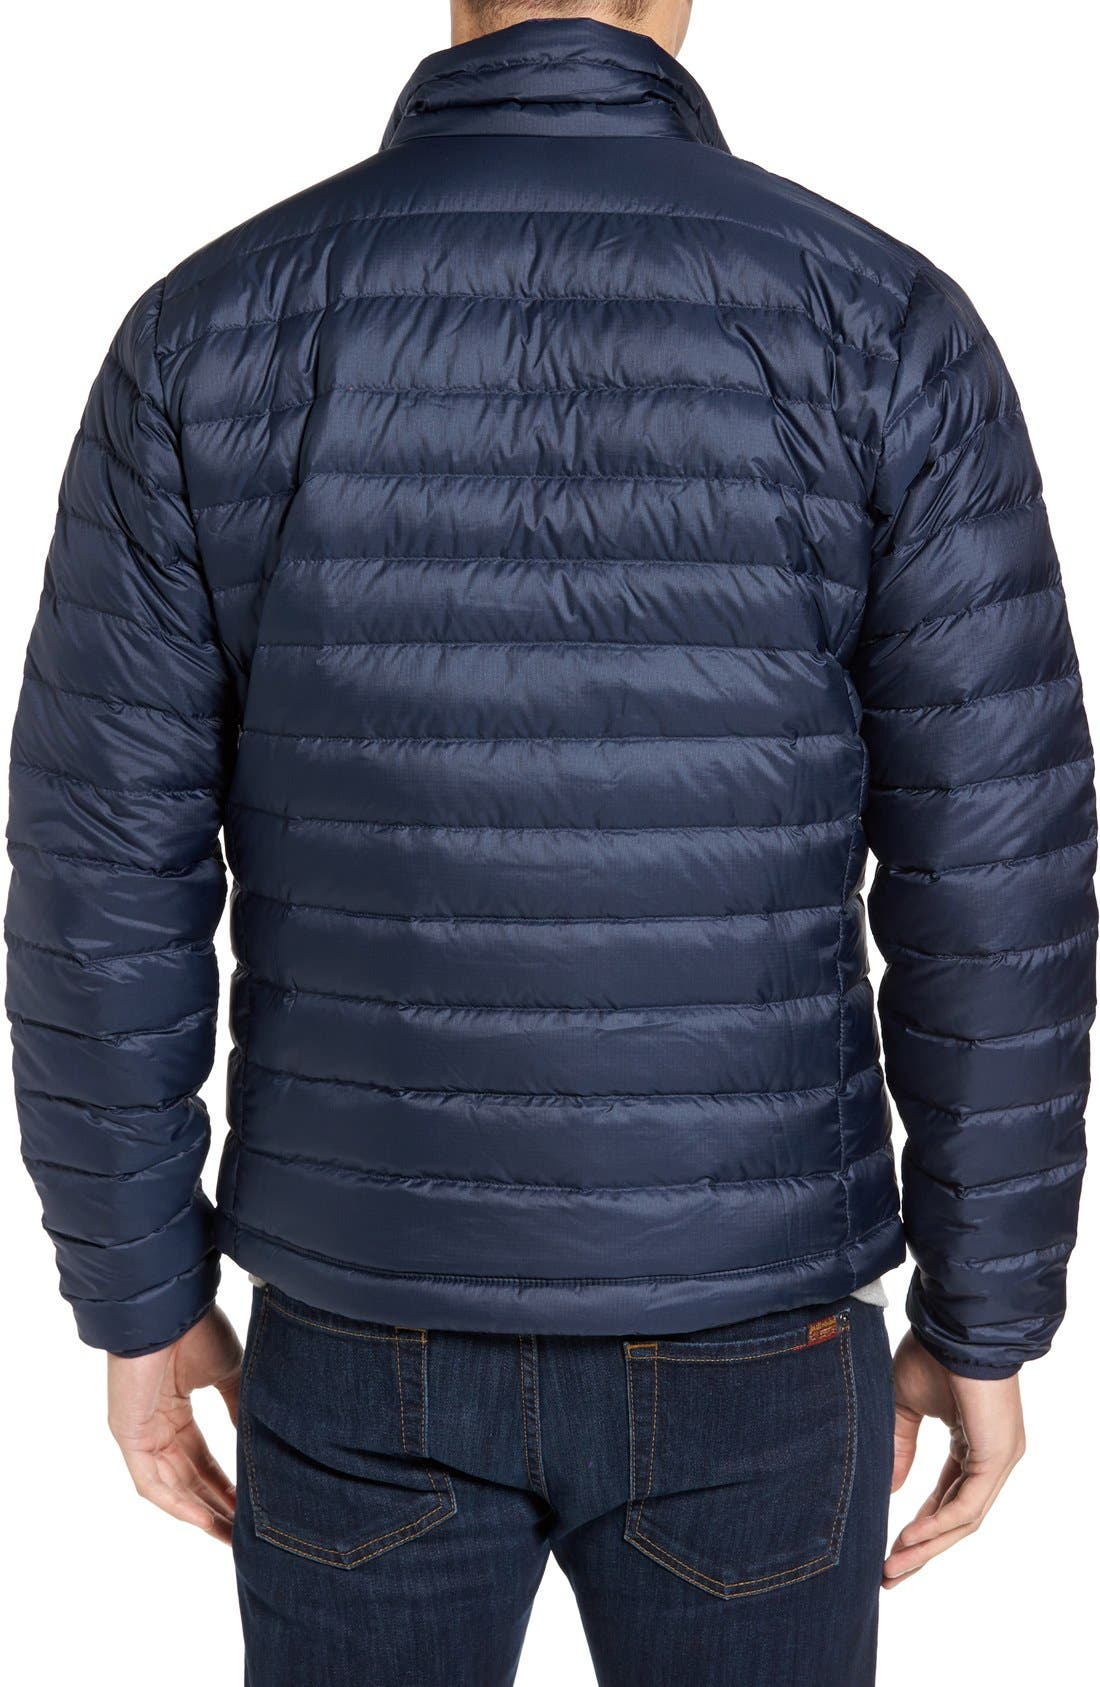 Water Repellent Down Jacket,                             Alternate thumbnail 37, color,